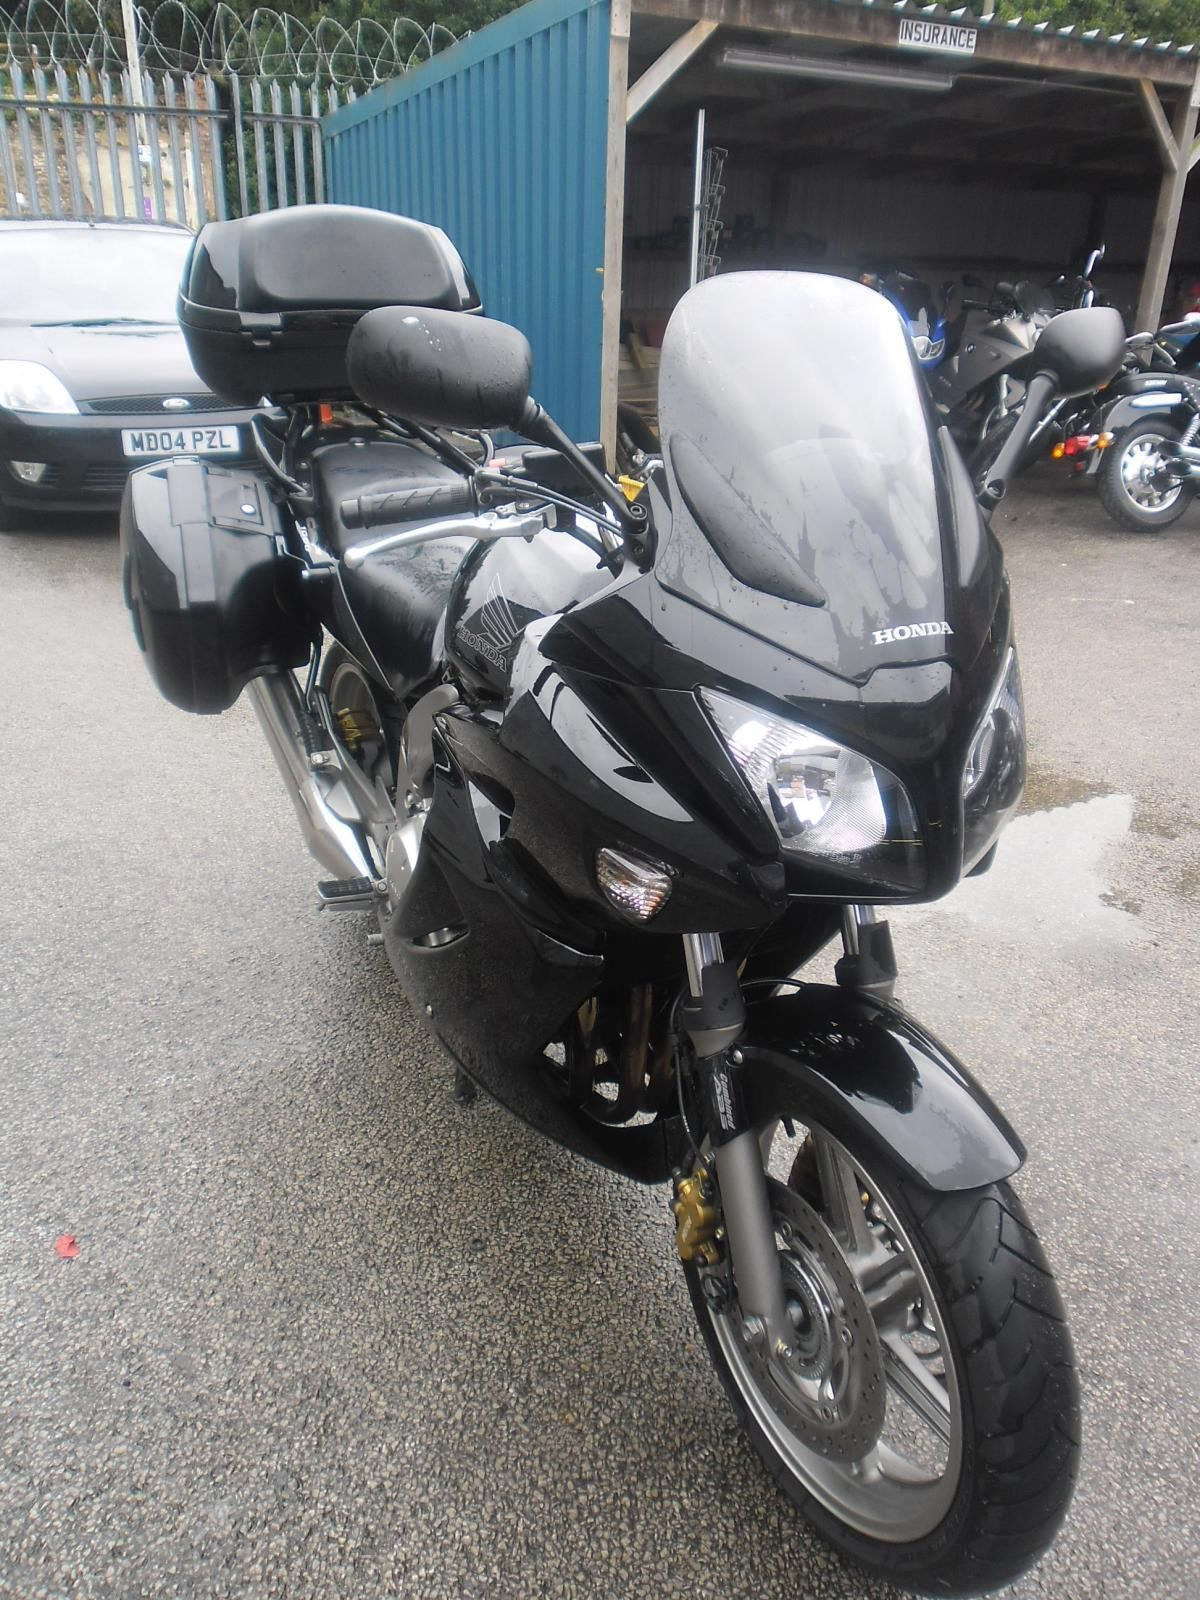 2012 61 reg honda cbf1000 aa gt with 9751 miles with full service history Honda PCX 125 Scooter Parts 2011 Honda PCX 125 Accessories